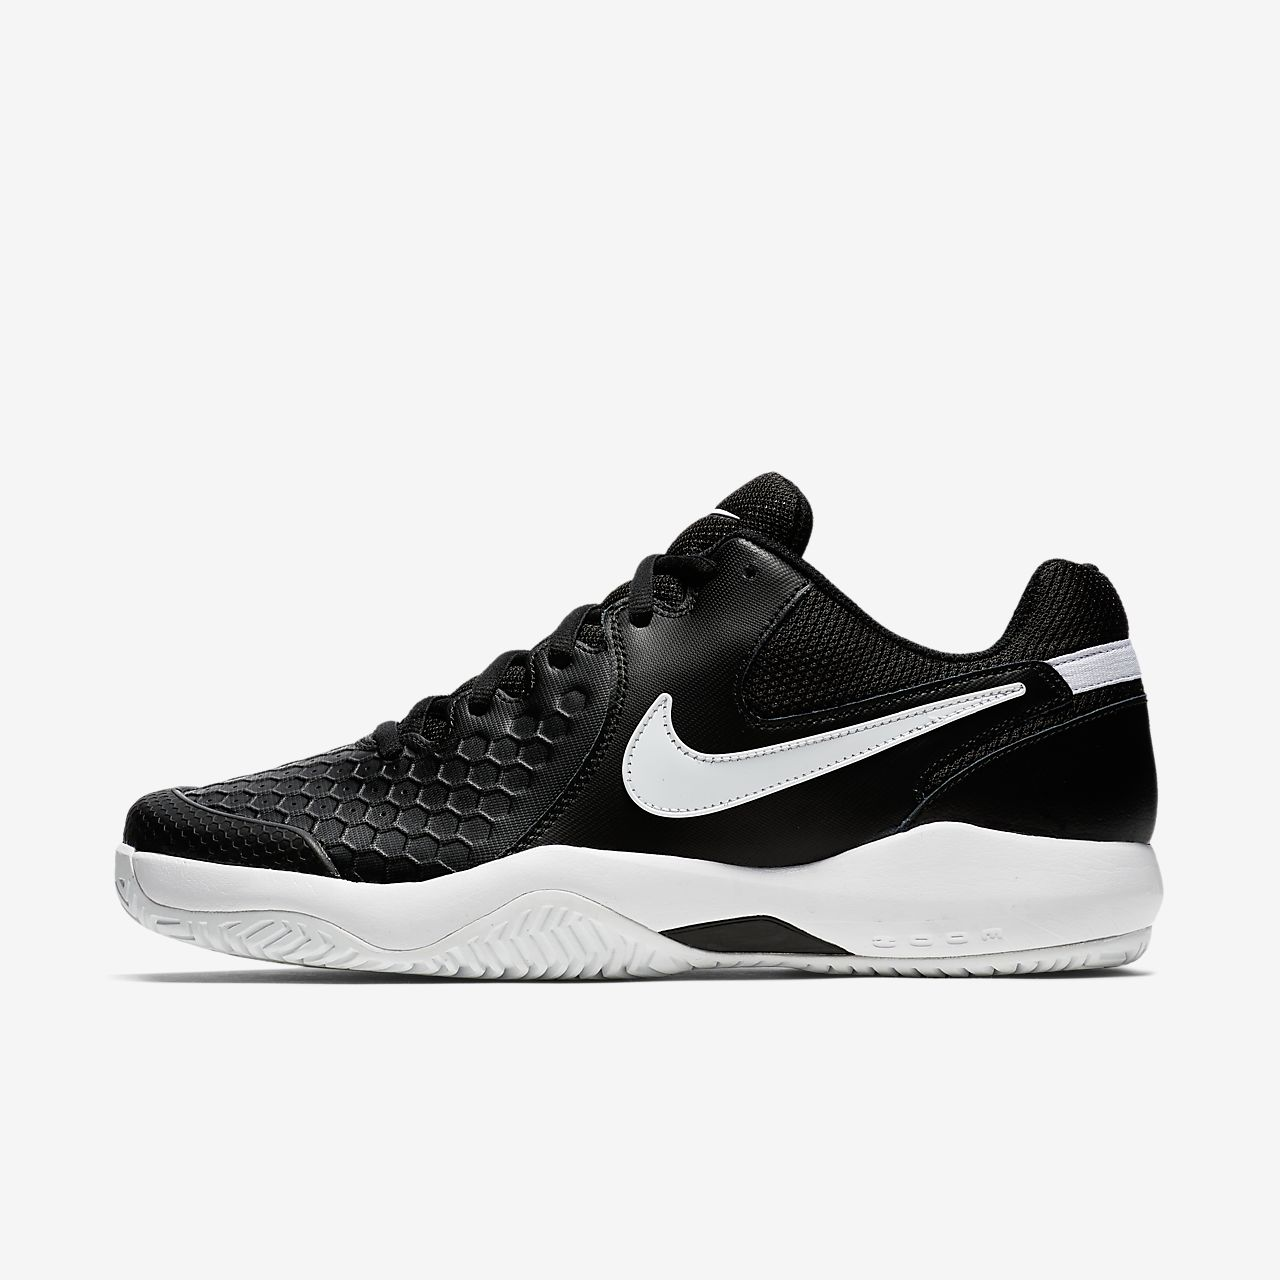 47c29b0990142 NikeCourt Air Zoom Resistance Men s Hard Court Tennis Shoe. Nike.com GB